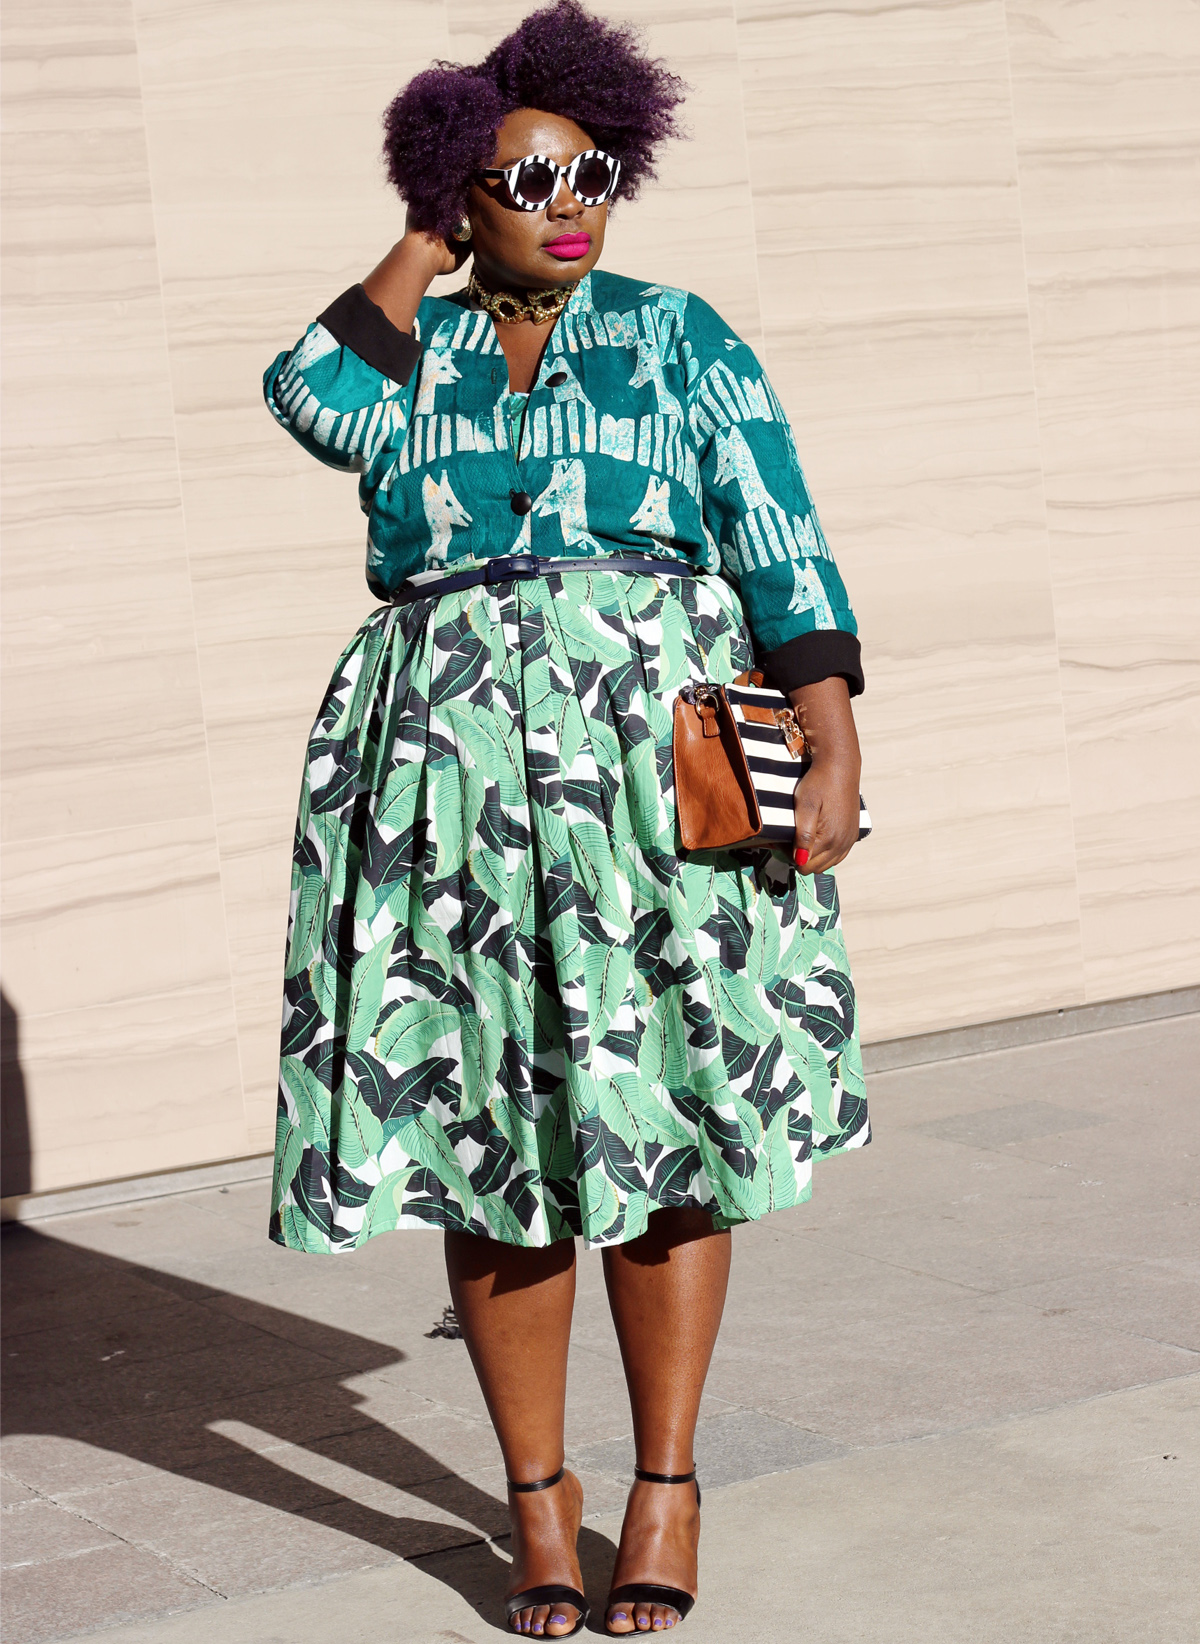 plus size style fashion week outfit fashion week street style 02